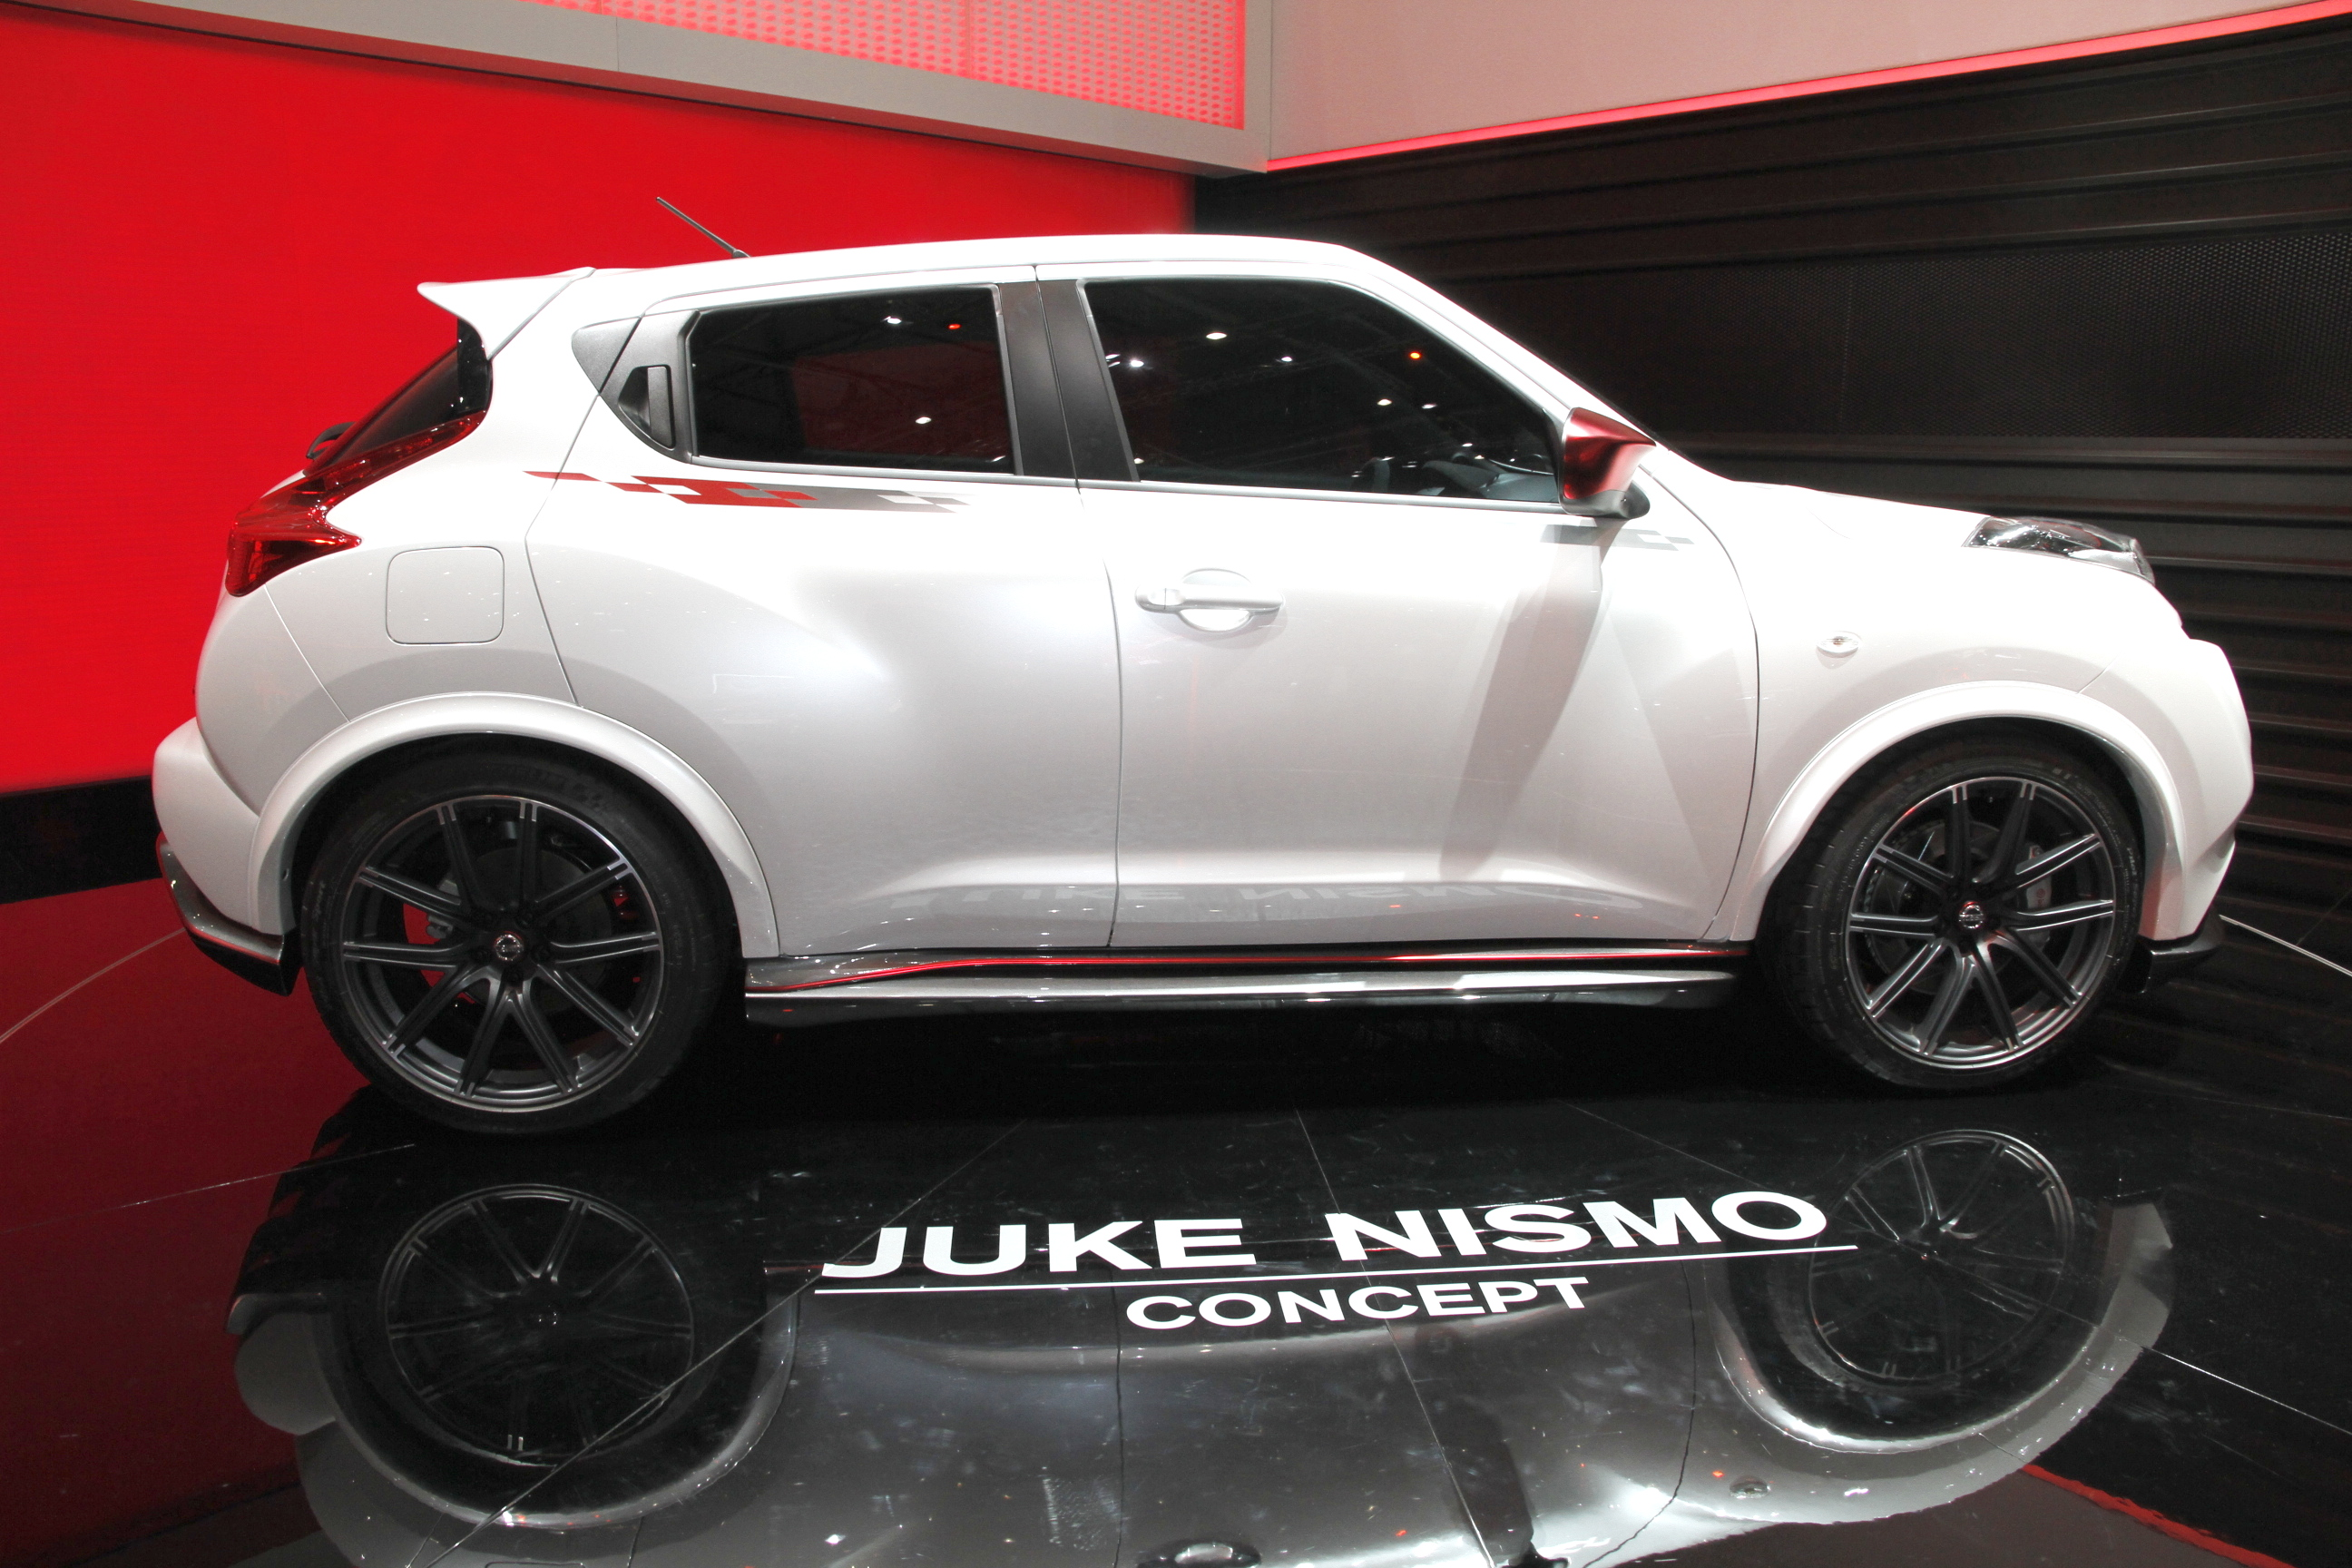 salon de gen ve 2012 nissan juke nismo concept dark cars wallpapers. Black Bedroom Furniture Sets. Home Design Ideas